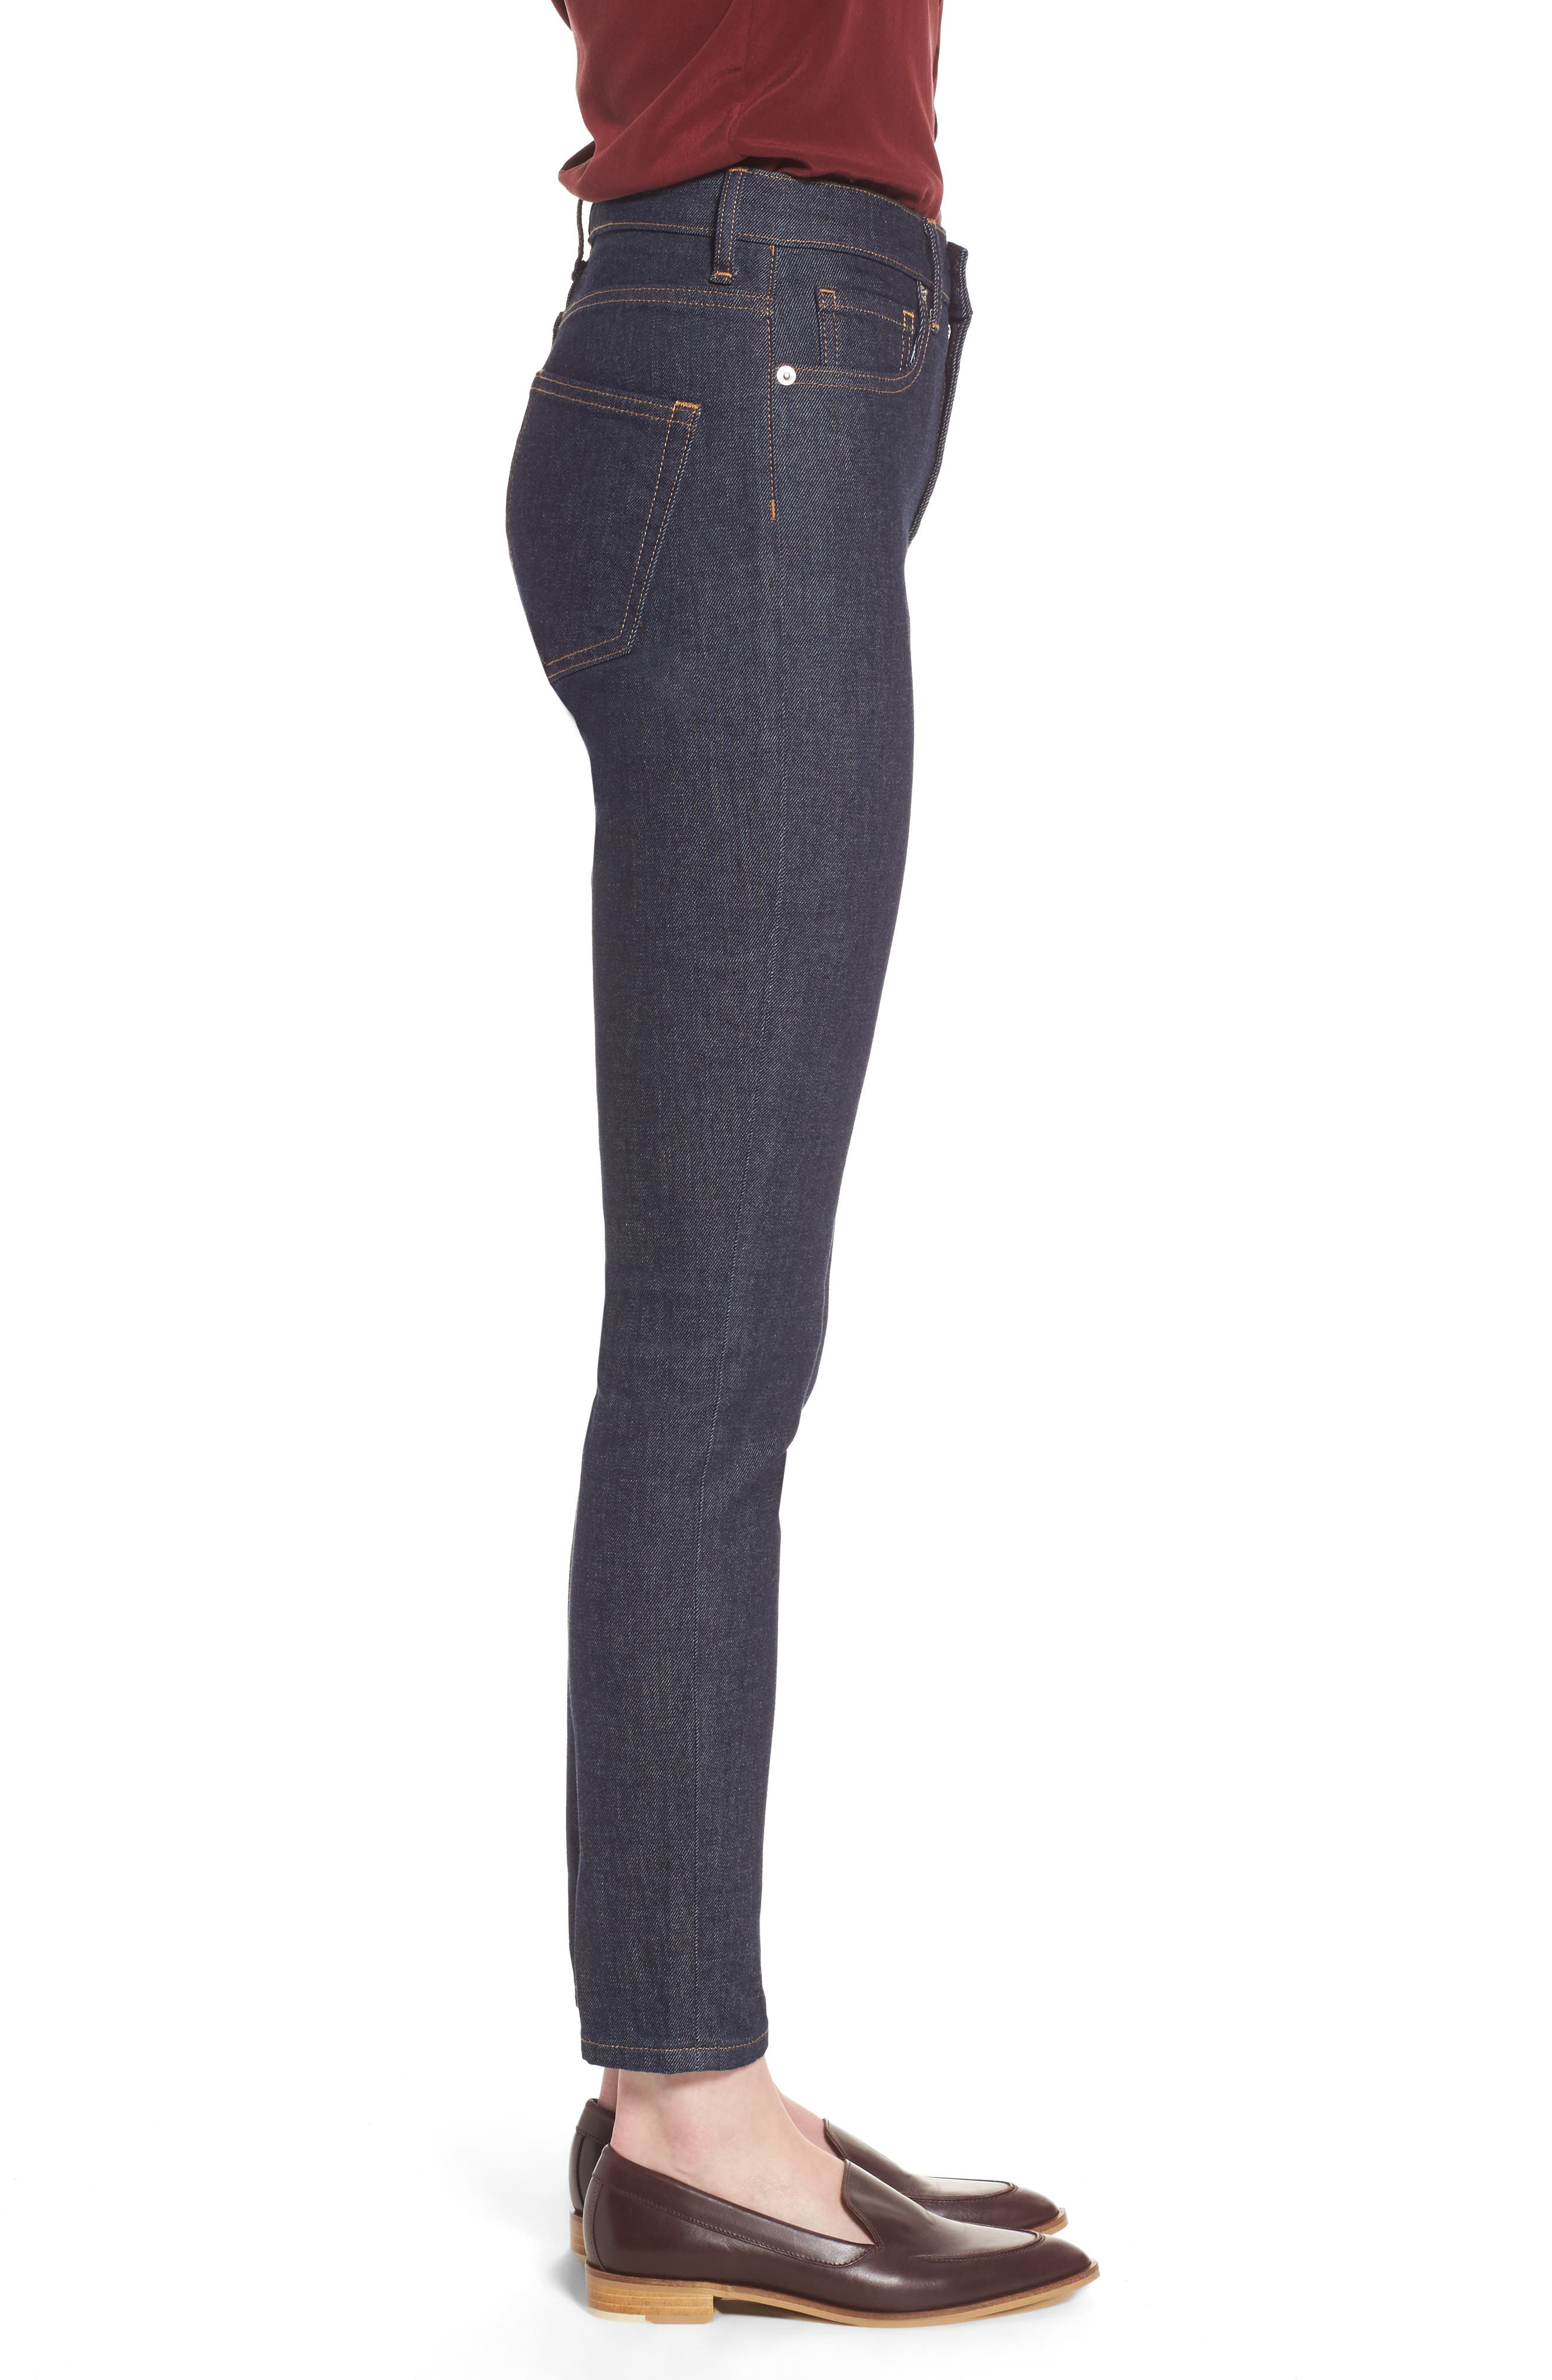 Alternate Image 3  - Everlane The High Rise Skinny Jeans